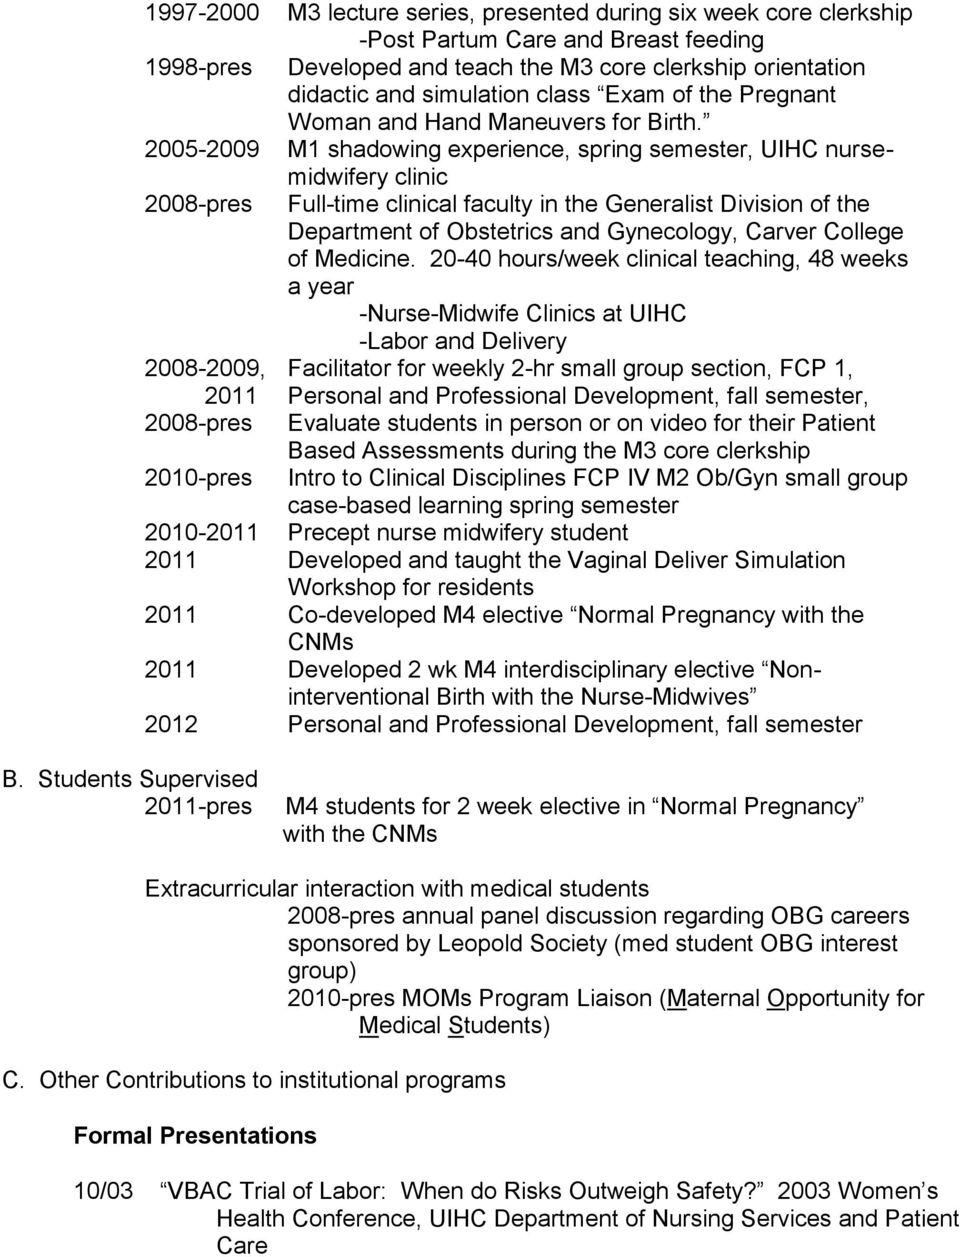 2005-2009 M1 shadowing experience, spring semester, UIHC nursemidwifery clinic 2008-pres Full-time clinical faculty in the Generalist Division of the Department of Obstetrics and Gynecology, Carver